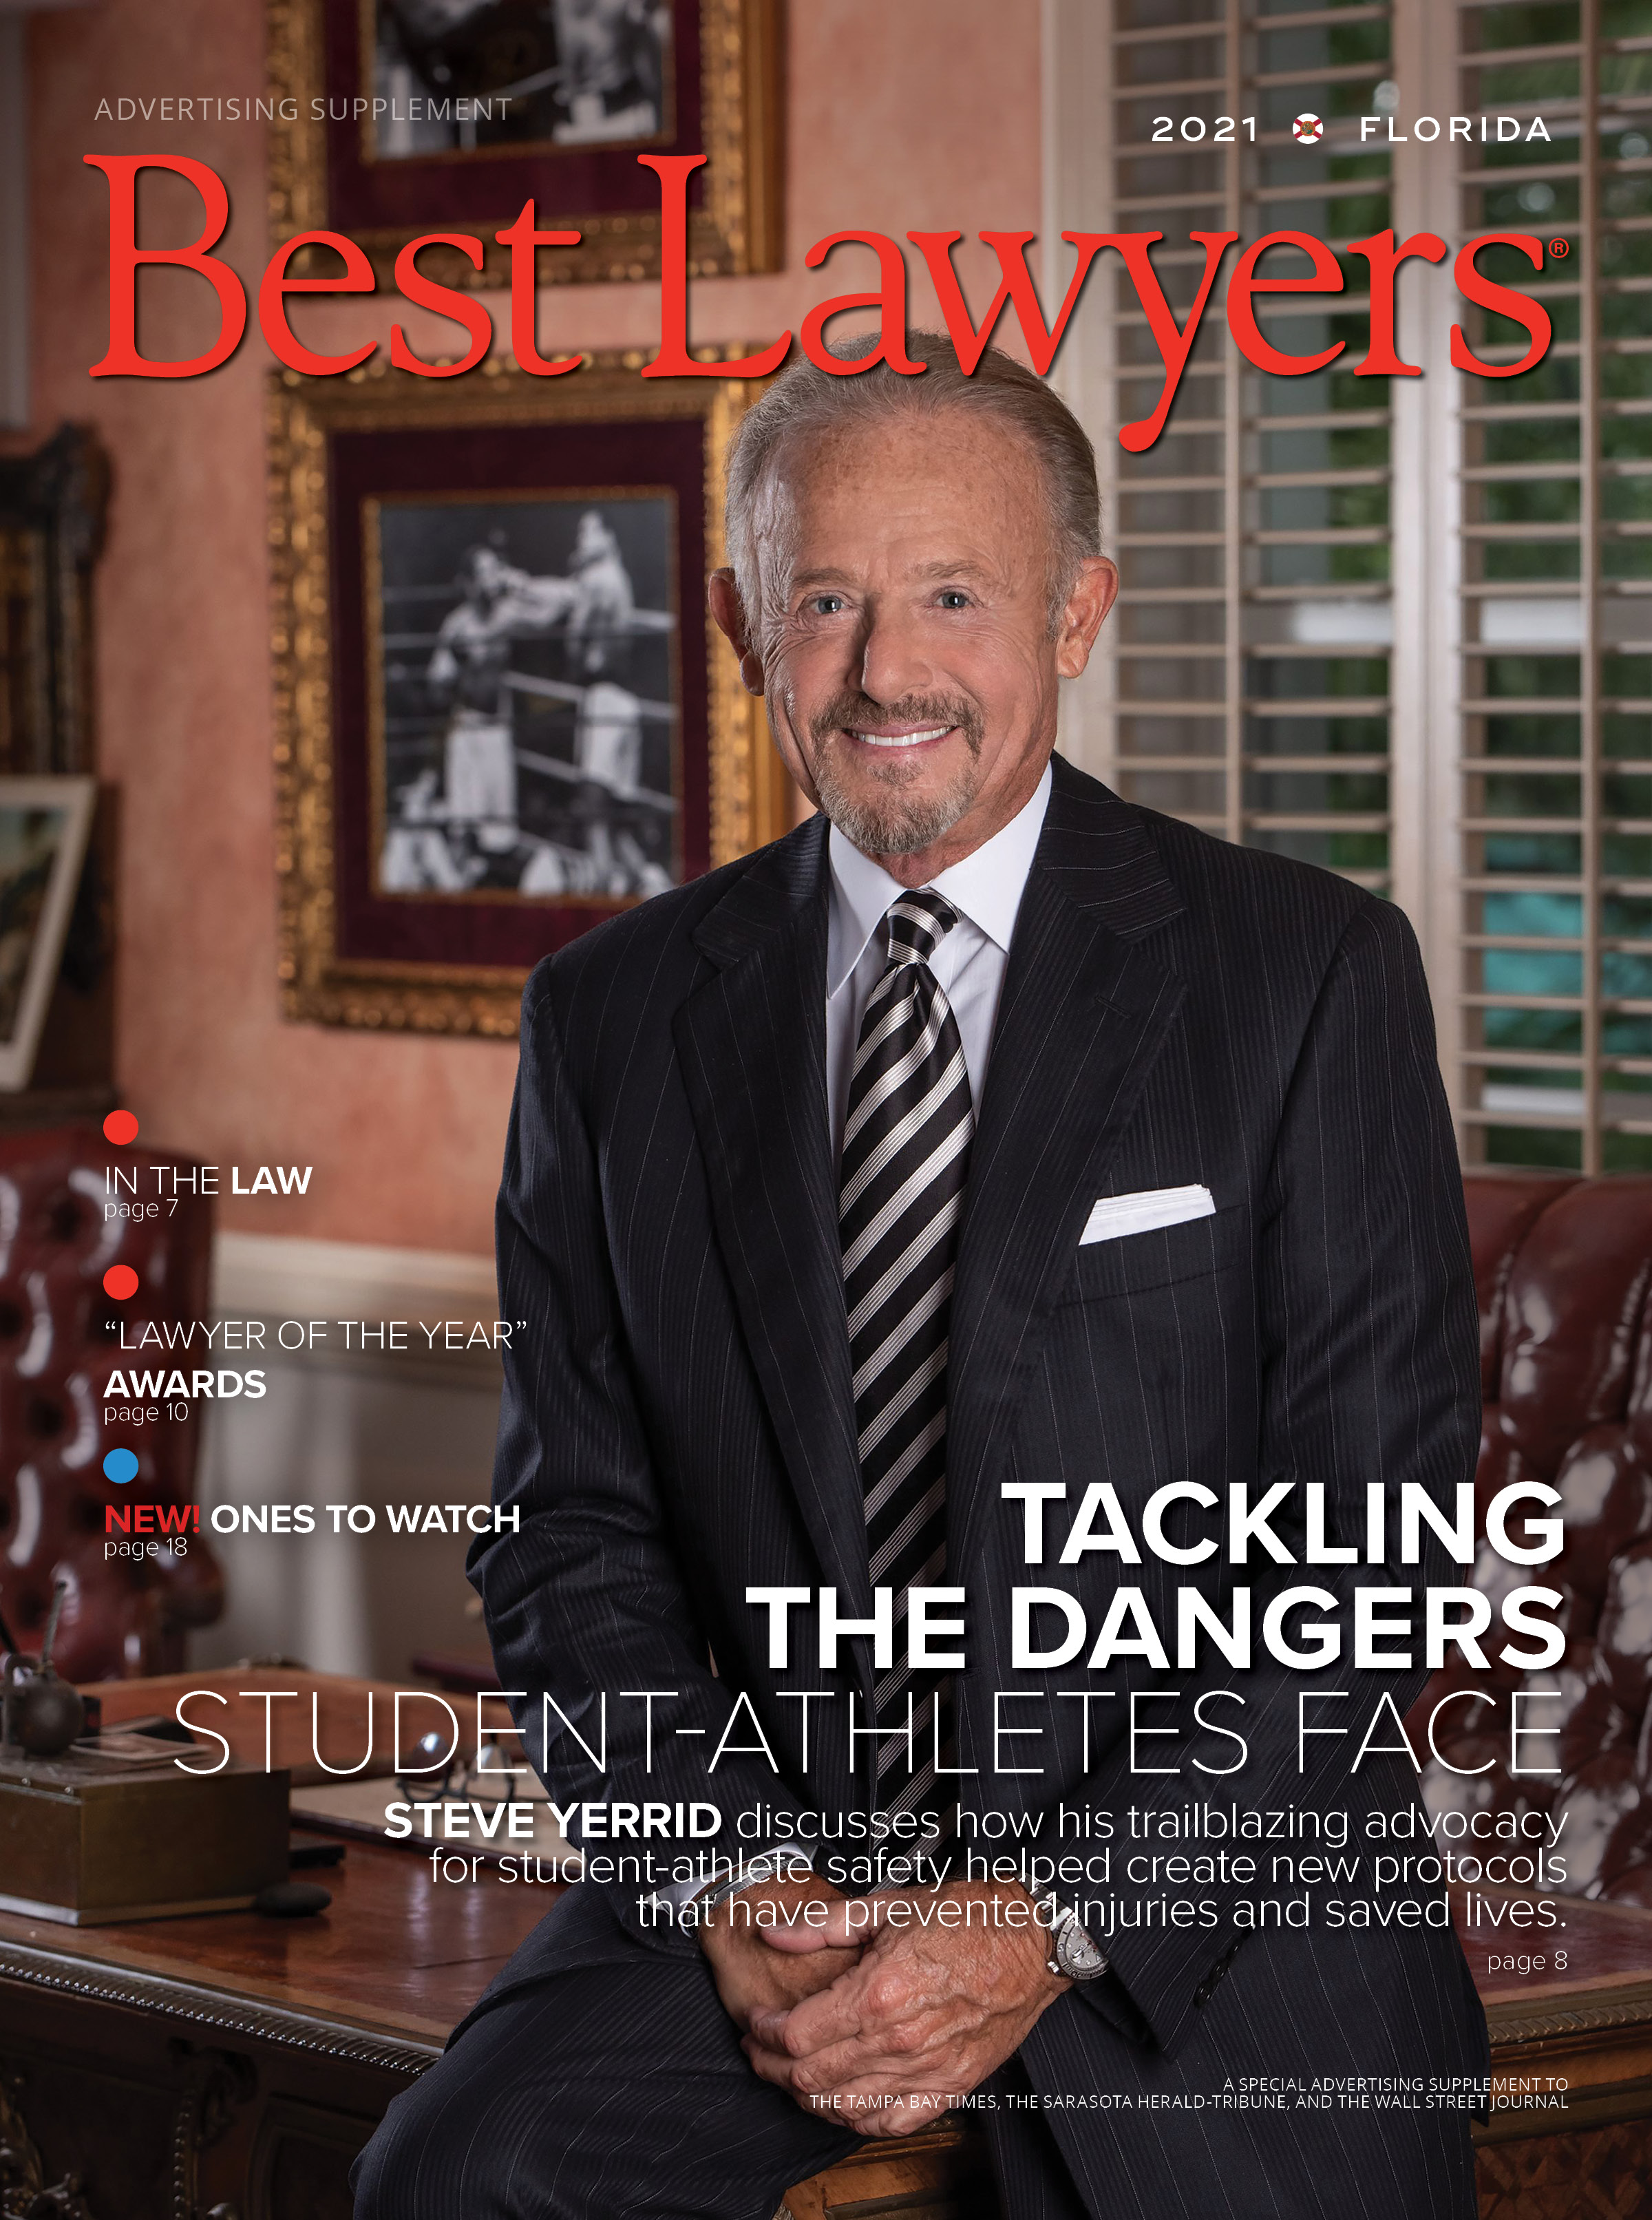 2021 Tampa's Best Lawyers cover